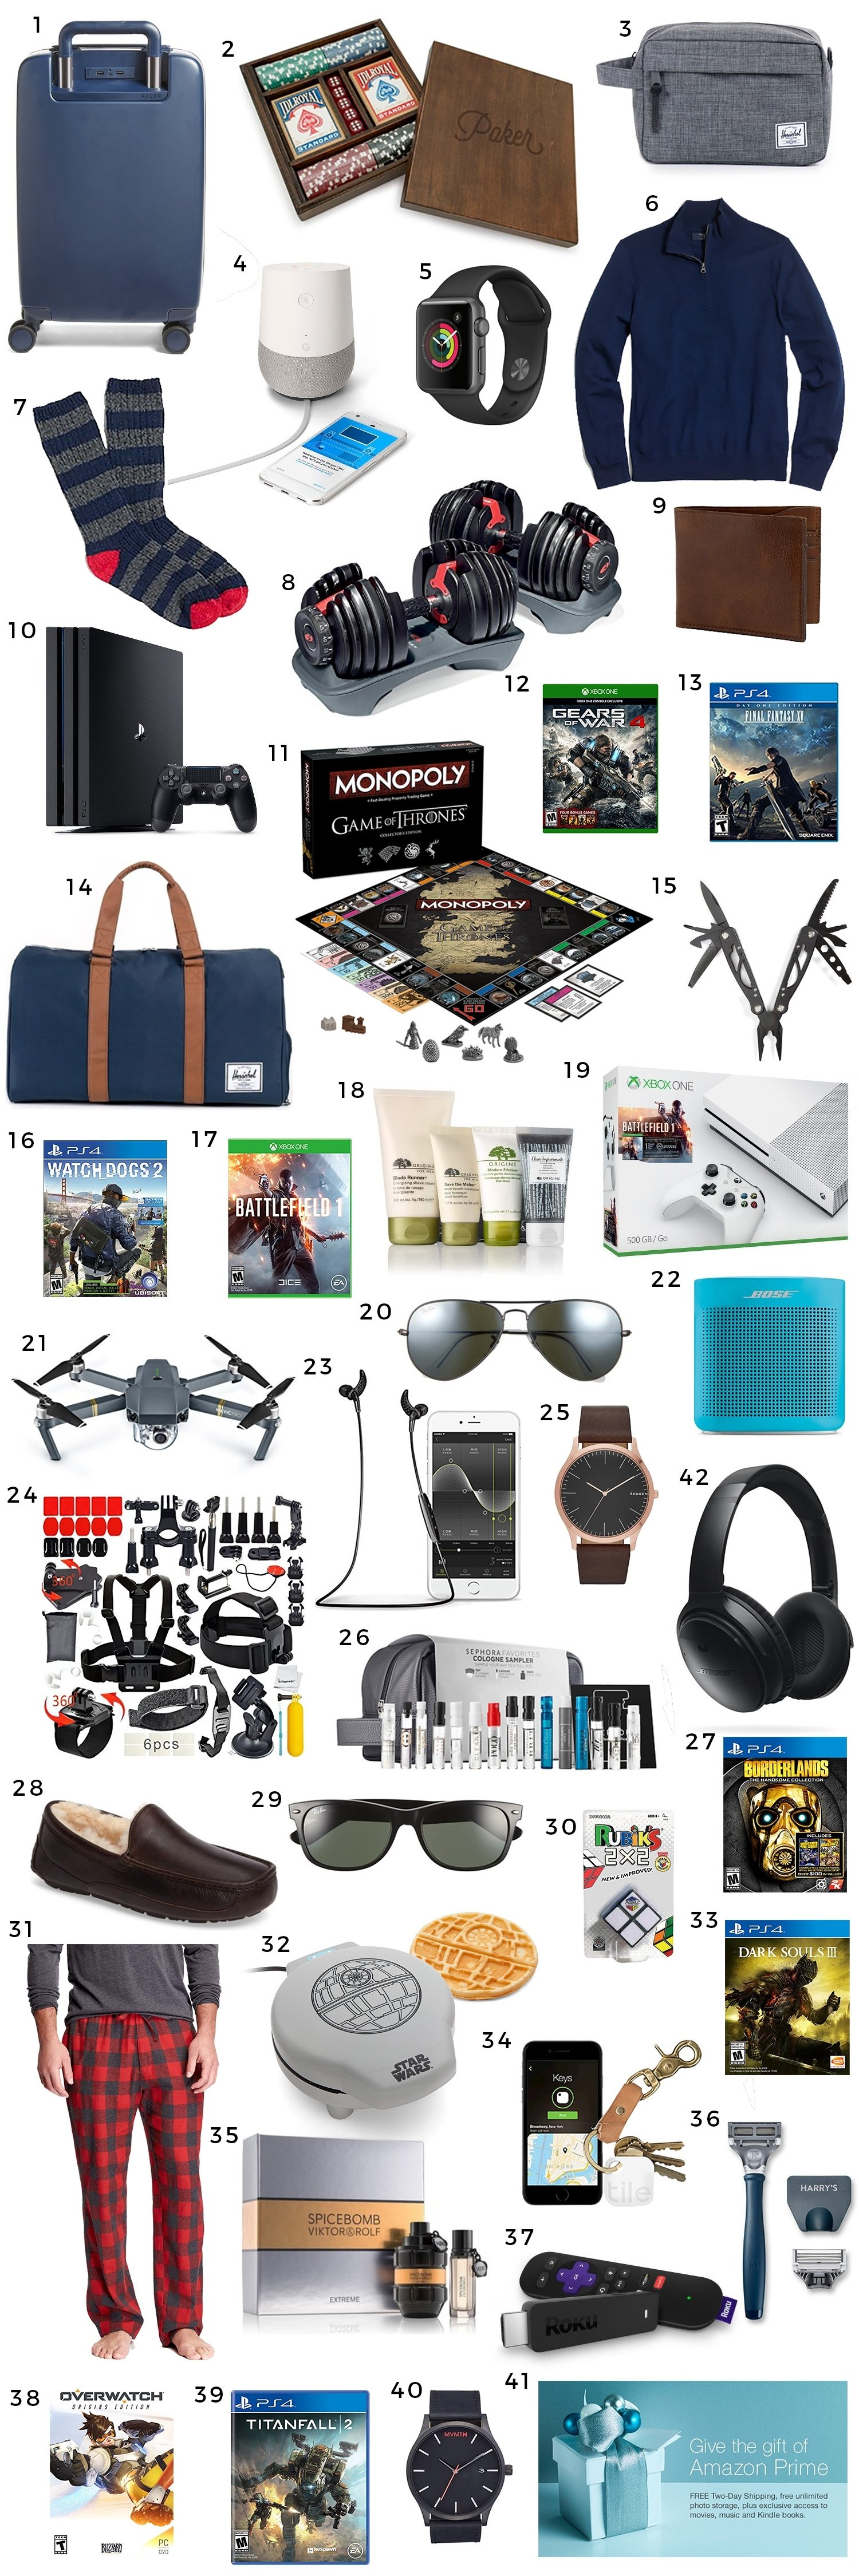 10 Attractive Christmas Gift Ideas For Him the best christmas gift ideas for men ashley brooke nicholas 14 2021